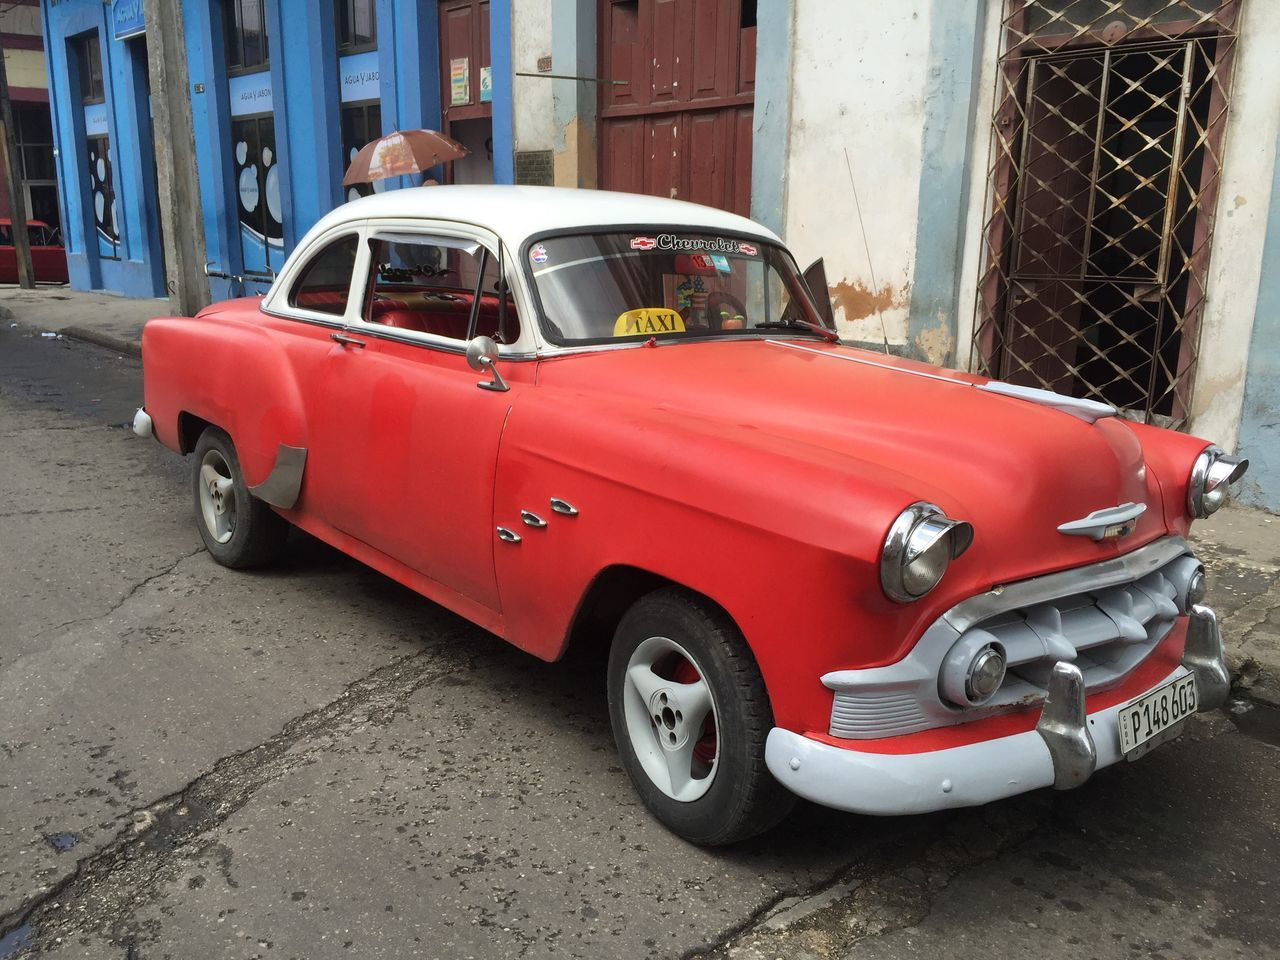 Outdoors Cuba Collection Cuban Cars Cuba Car Cuba Cuban Taxi Red Car Oldtimer Classic Car